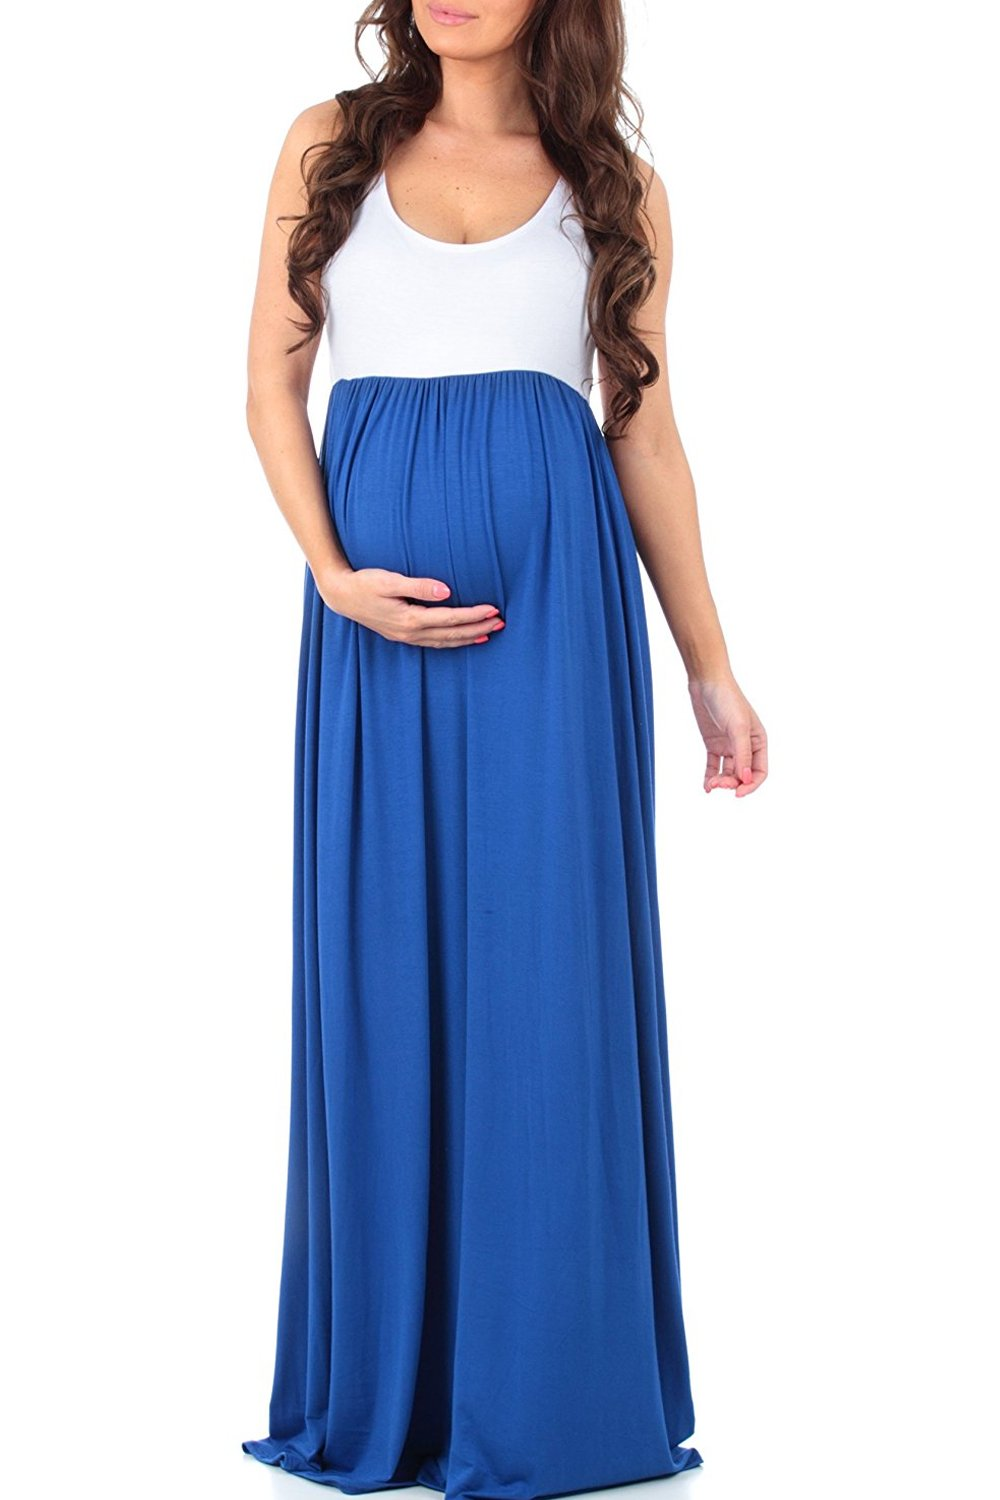 MANNEW Maternity Dress Sleeveless Maxi Dress Tank Stitching Color Block Stretch Causual Wrap Dress Ruched Gowns Blue X-Large by MANNEW (Image #1)